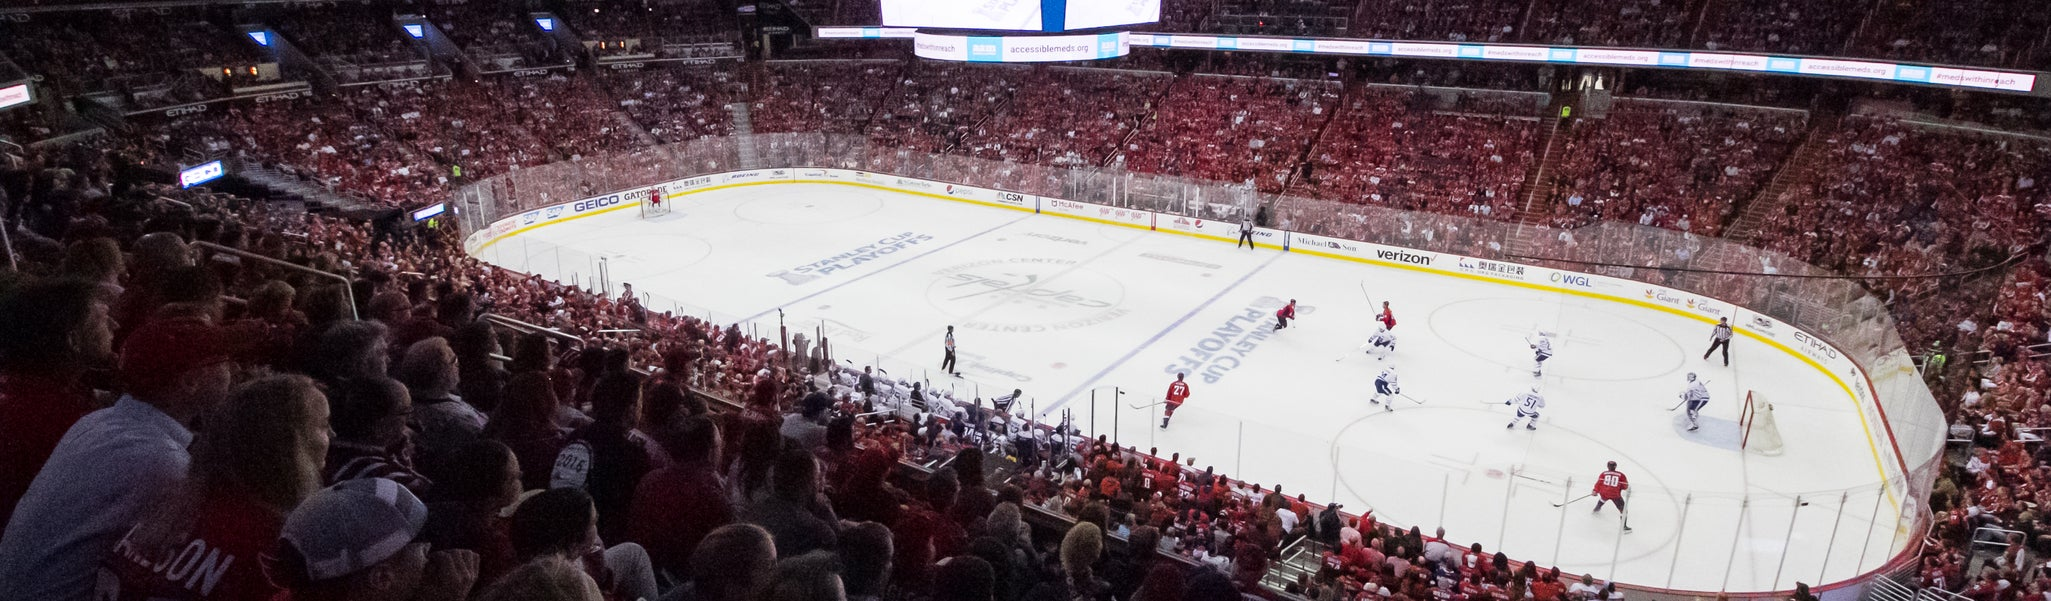 Seat view from Acela Level Corner 202 at Capital One Arena